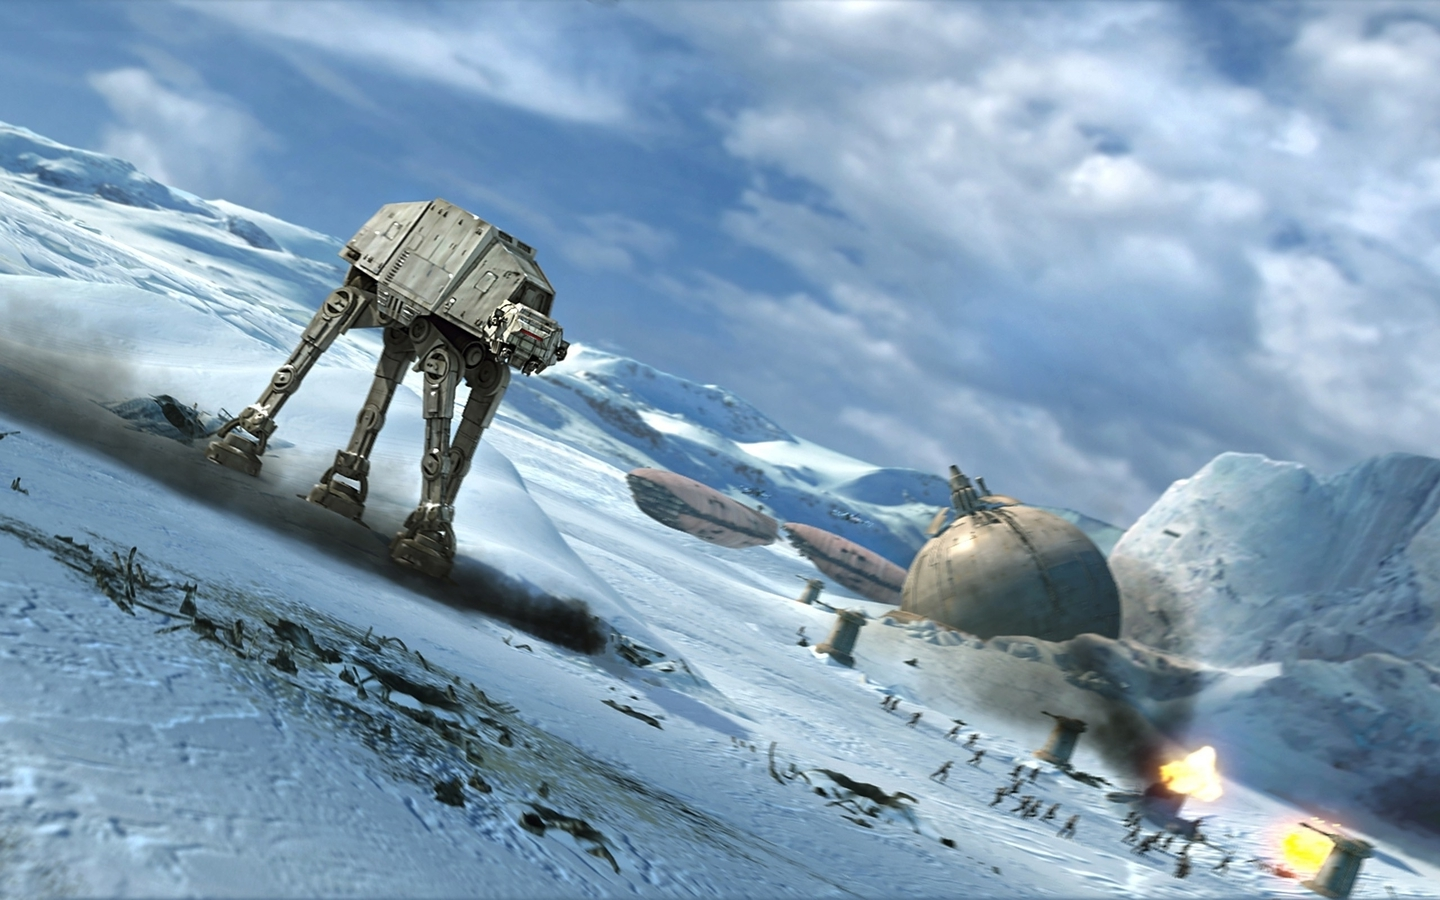 Star wars hoth battles atat (1440x900)